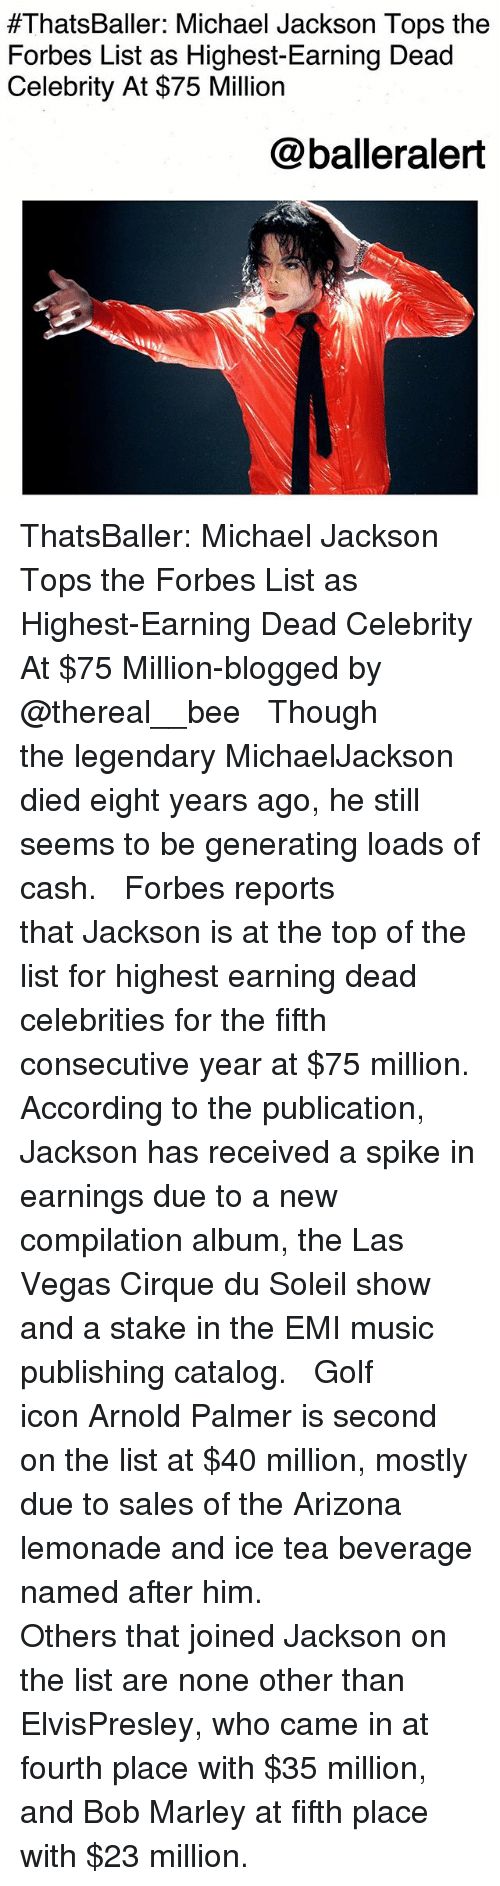 Bob Marley, Memes, and Michael Jackson:  #ThatsBaller: Michael Jackson Tops the  Forbes List as Highest-Earning Dead  Celebrity At $75 Million  @balleralert ThatsBaller: Michael Jackson Tops the Forbes List as Highest-Earning Dead Celebrity At $75 Million-blogged by @thereal__bee ⠀⠀⠀⠀⠀⠀⠀⠀⠀ ⠀⠀ Though the legendary MichaelJackson died eight years ago, he still seems to be generating loads of cash. ⠀⠀⠀⠀⠀⠀⠀⠀⠀ ⠀⠀ Forbes reports that Jackson is at the top of the list for highest earning dead celebrities for the fifth consecutive year at $75 million. According to the publication, Jackson has received a spike in earnings due to a new compilation album, the Las Vegas Cirque du Soleil show and a stake in the EMI music publishing catalog. ⠀⠀⠀⠀⠀⠀⠀⠀⠀ ⠀⠀ Golf icon Arnold Palmer is second on the list at $40 million, mostly due to sales of the Arizona lemonade and ice tea beverage named after him. ⠀⠀⠀⠀⠀⠀⠀⠀⠀ ⠀⠀ Others that joined Jackson on the list are none other than ElvisPresley, who came in at fourth place with $35 million, and Bob Marley at fifth place with $23 million.